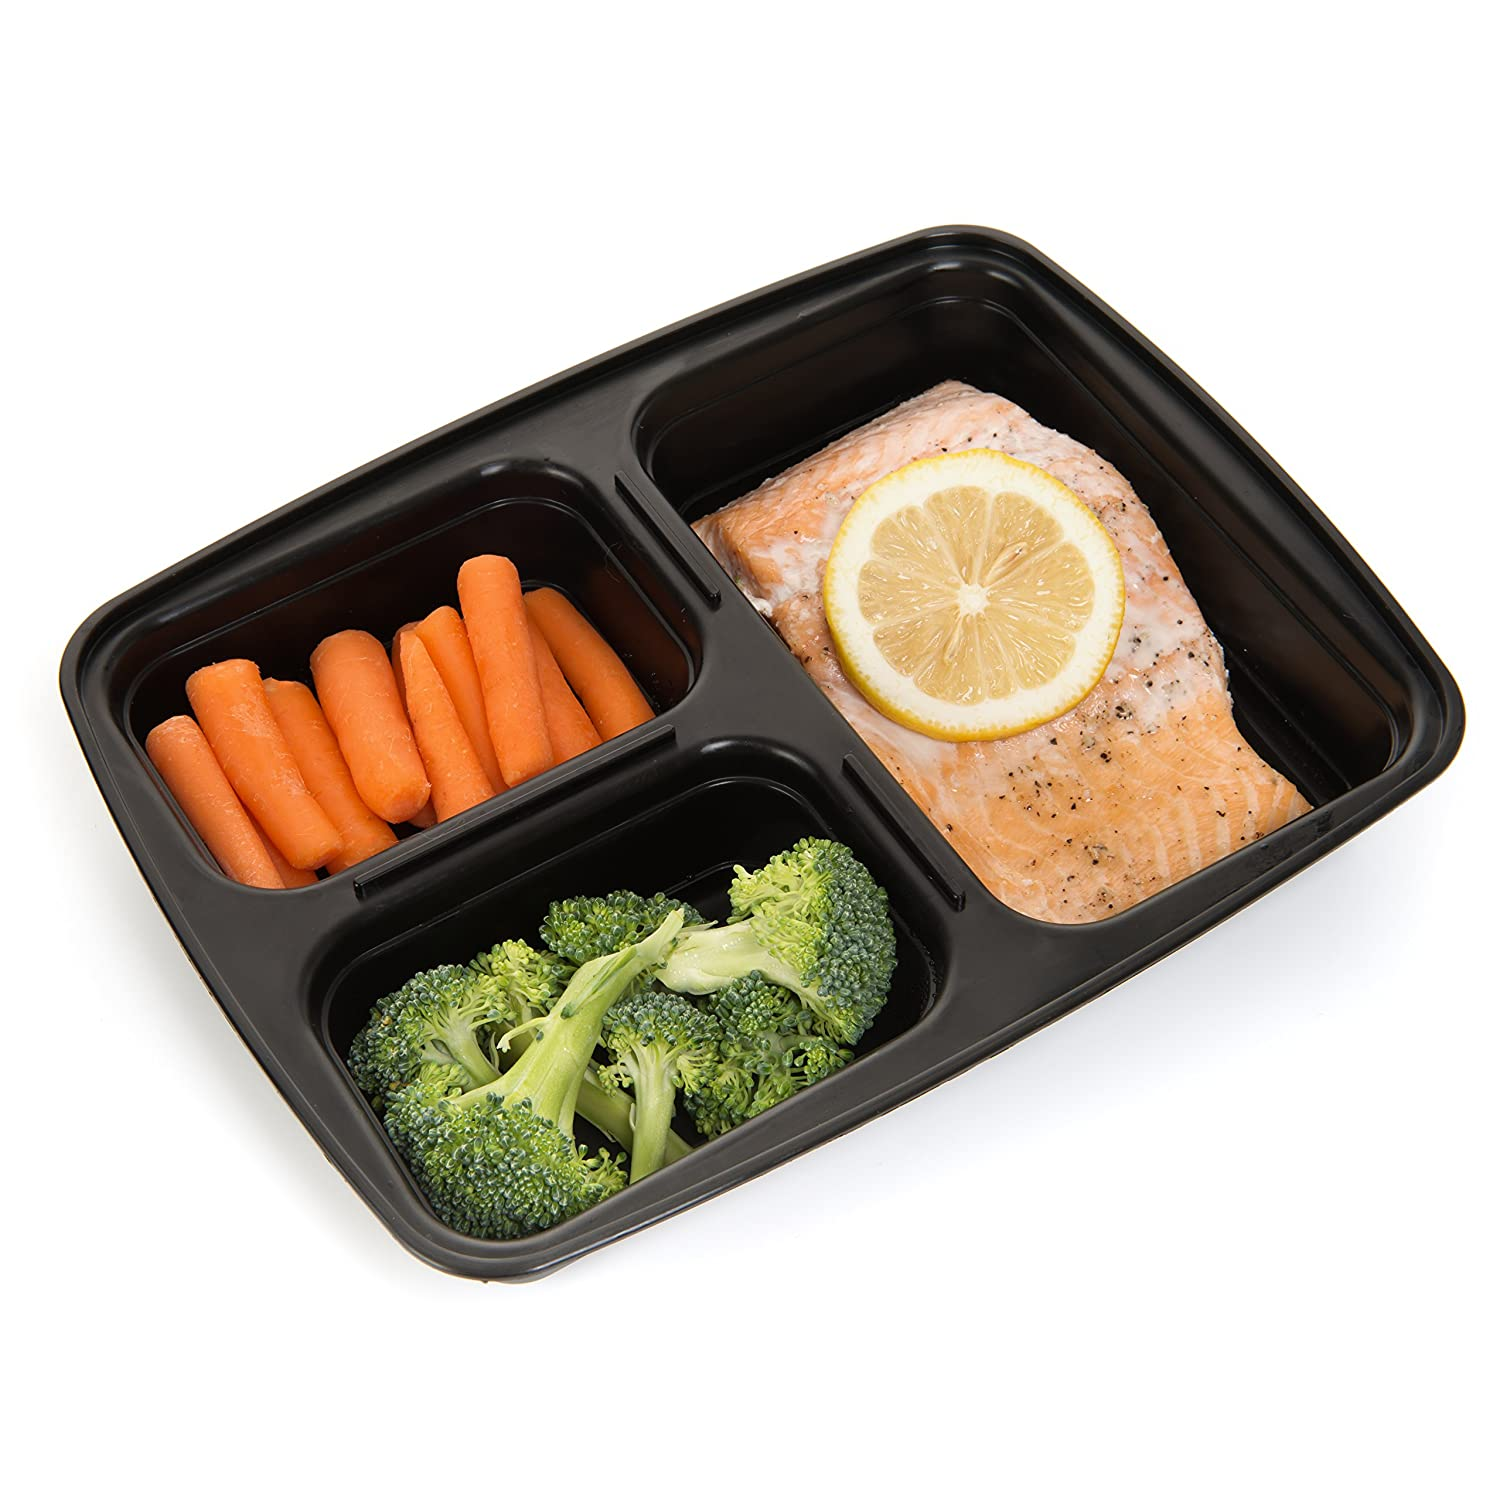 Amazon.com: Meal Prep Haven 3 Compartment Food Containers with ...